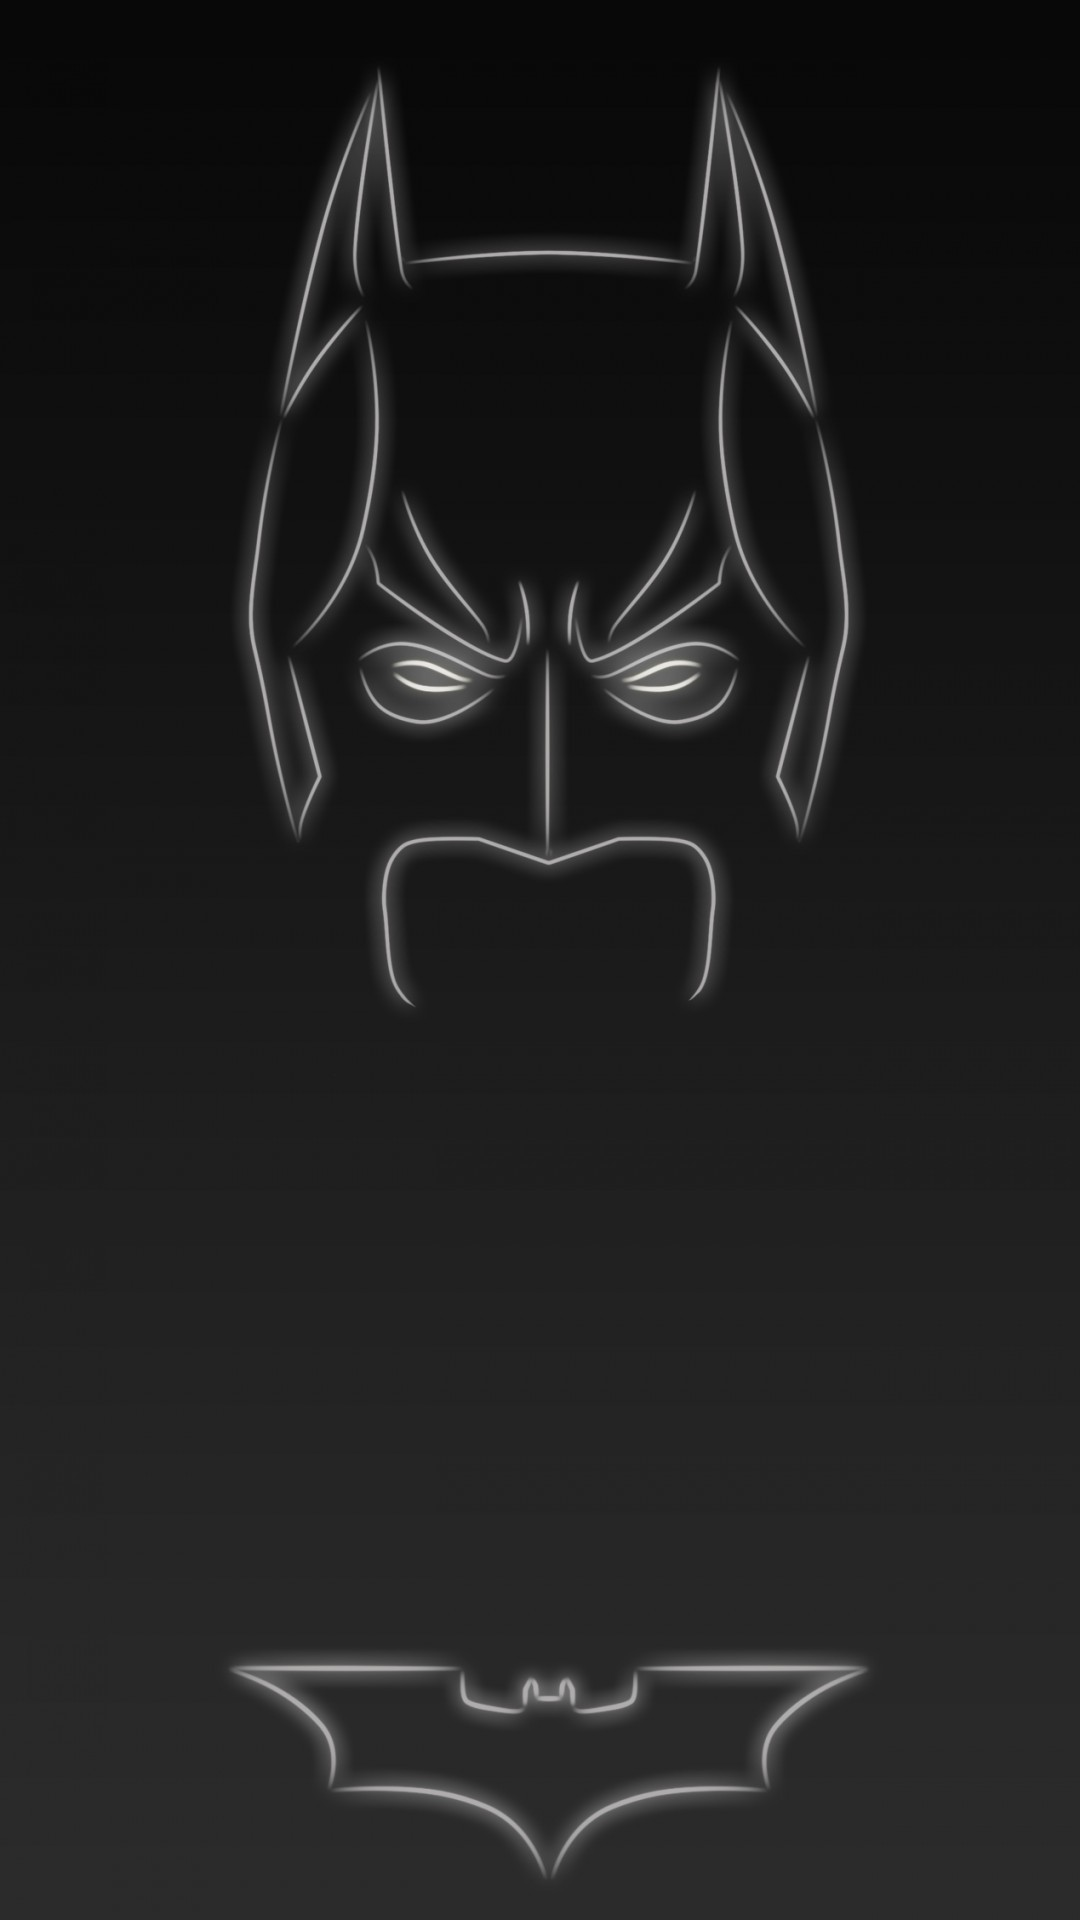 1080x1920 Dark knight the Batman. Tap to see more Superheroes Glow With Neon Light  Apple iPhone